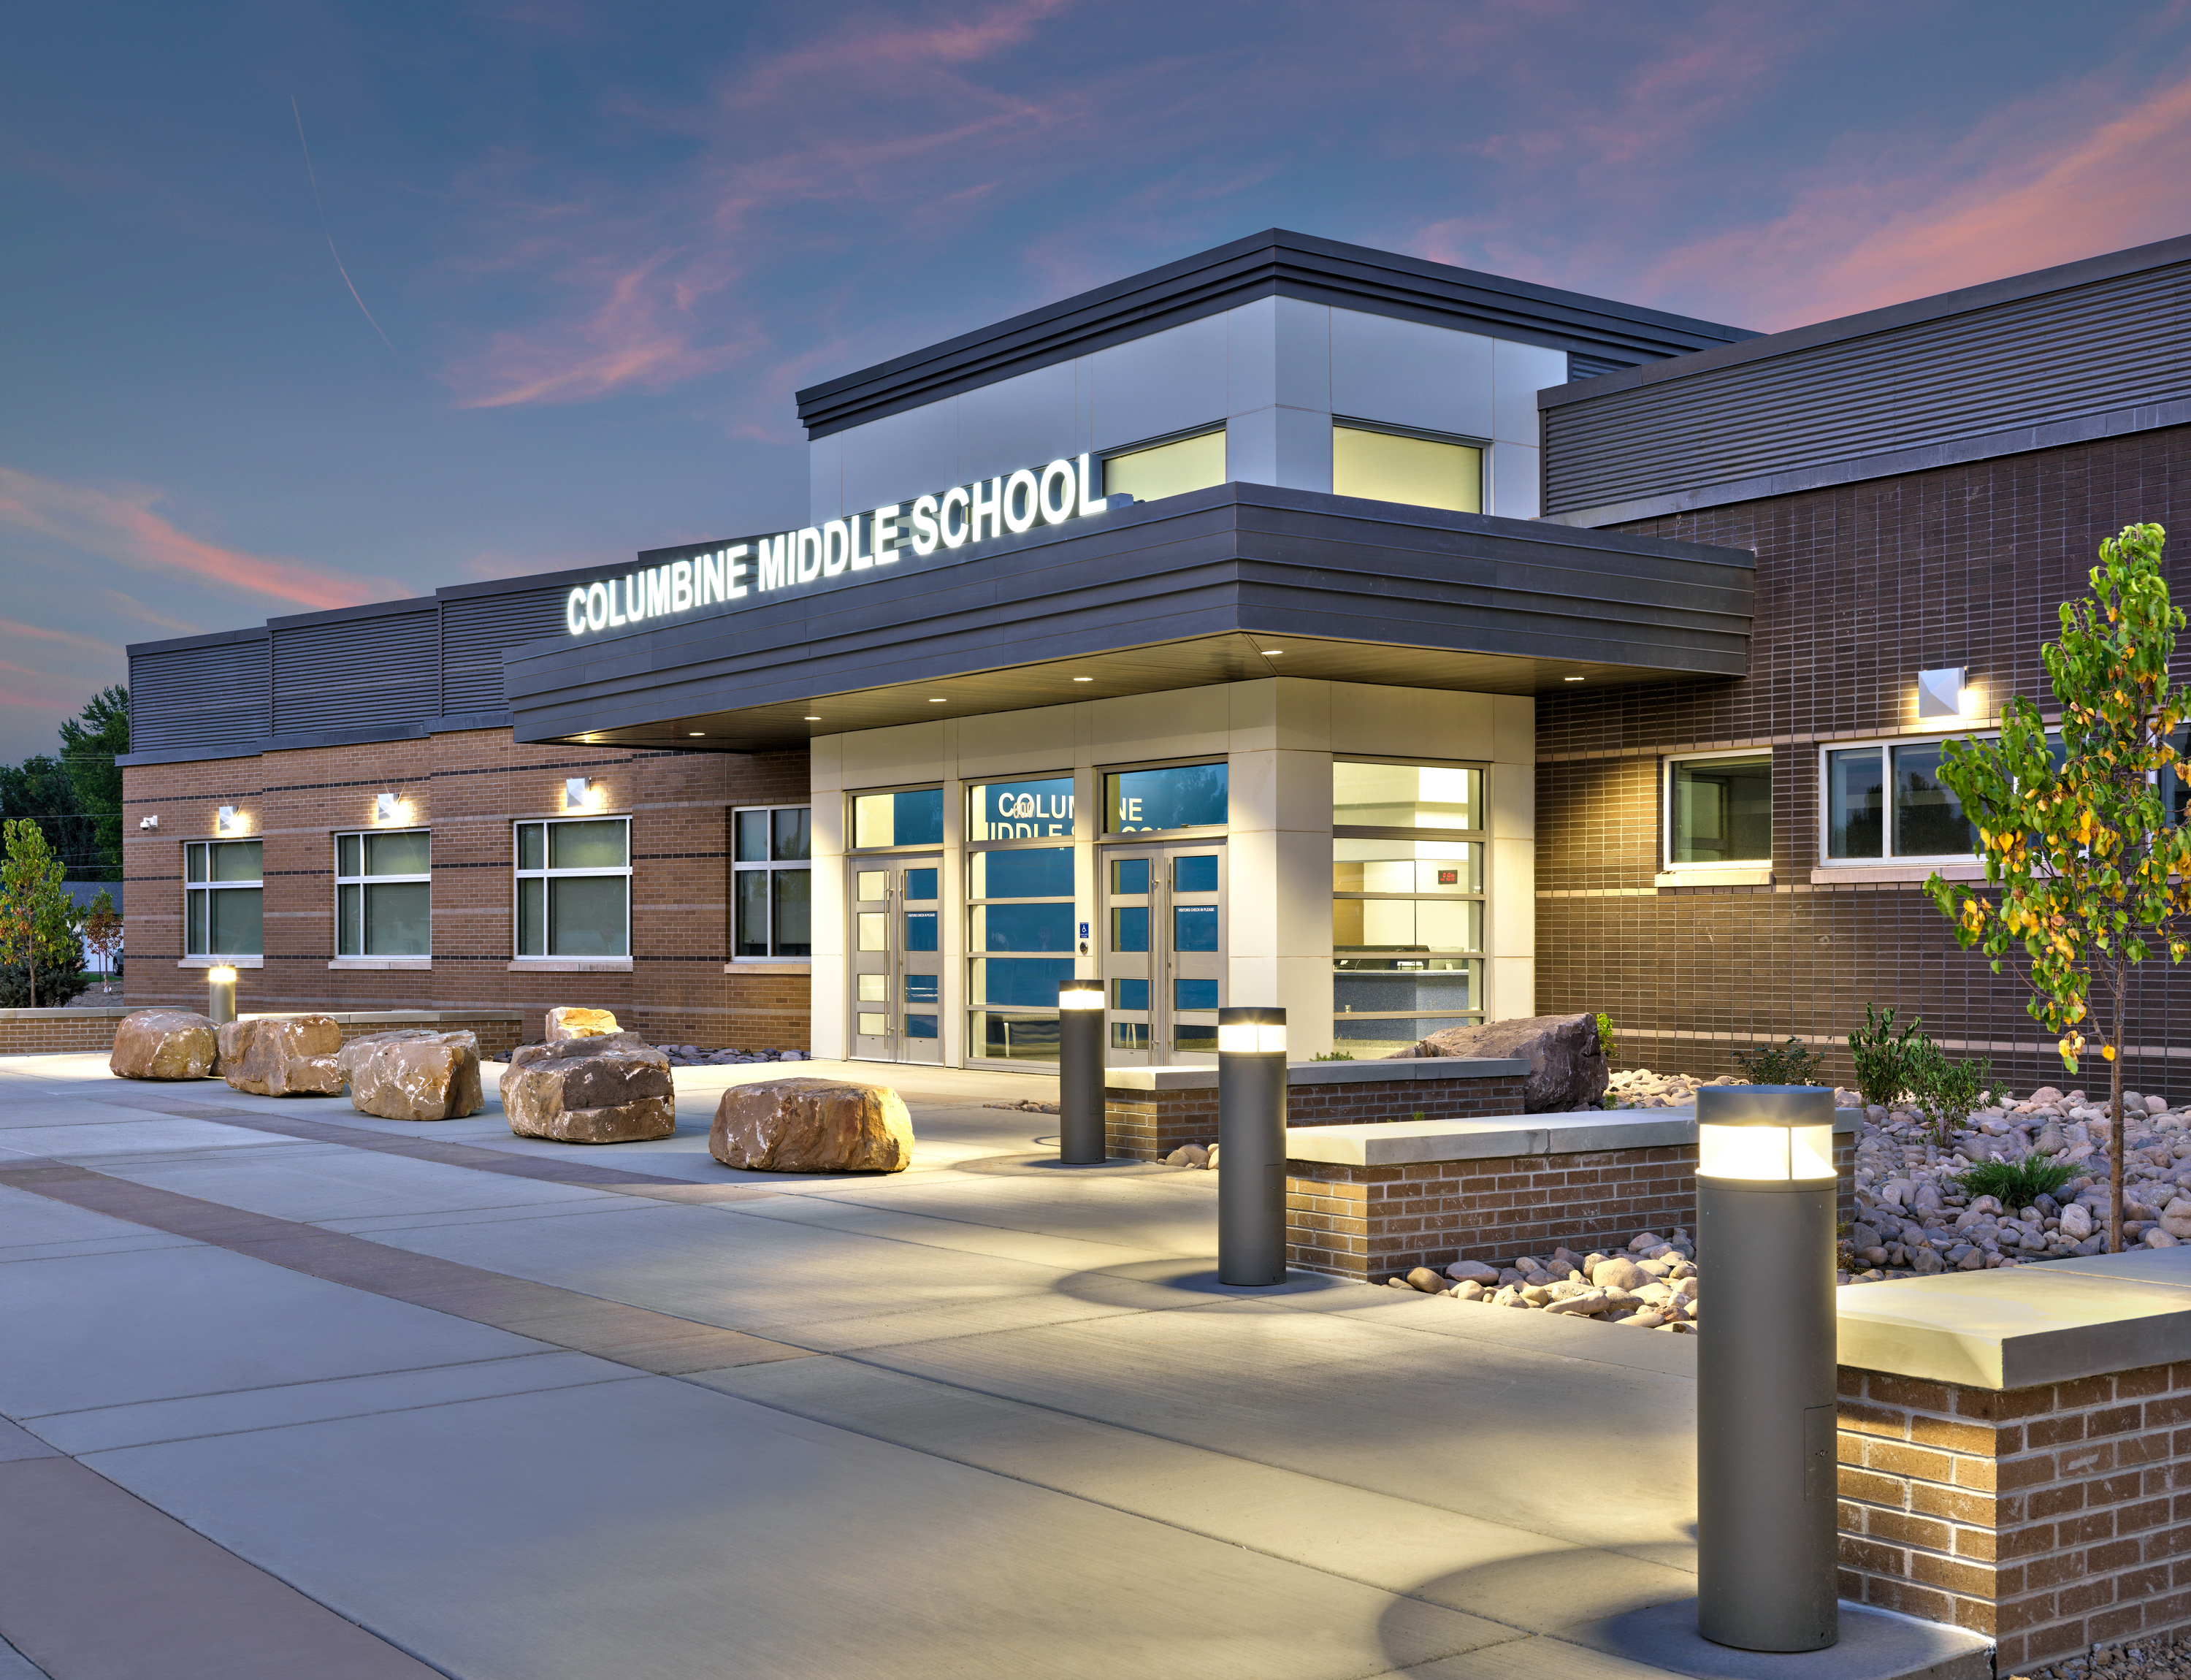 Columbine Middle School